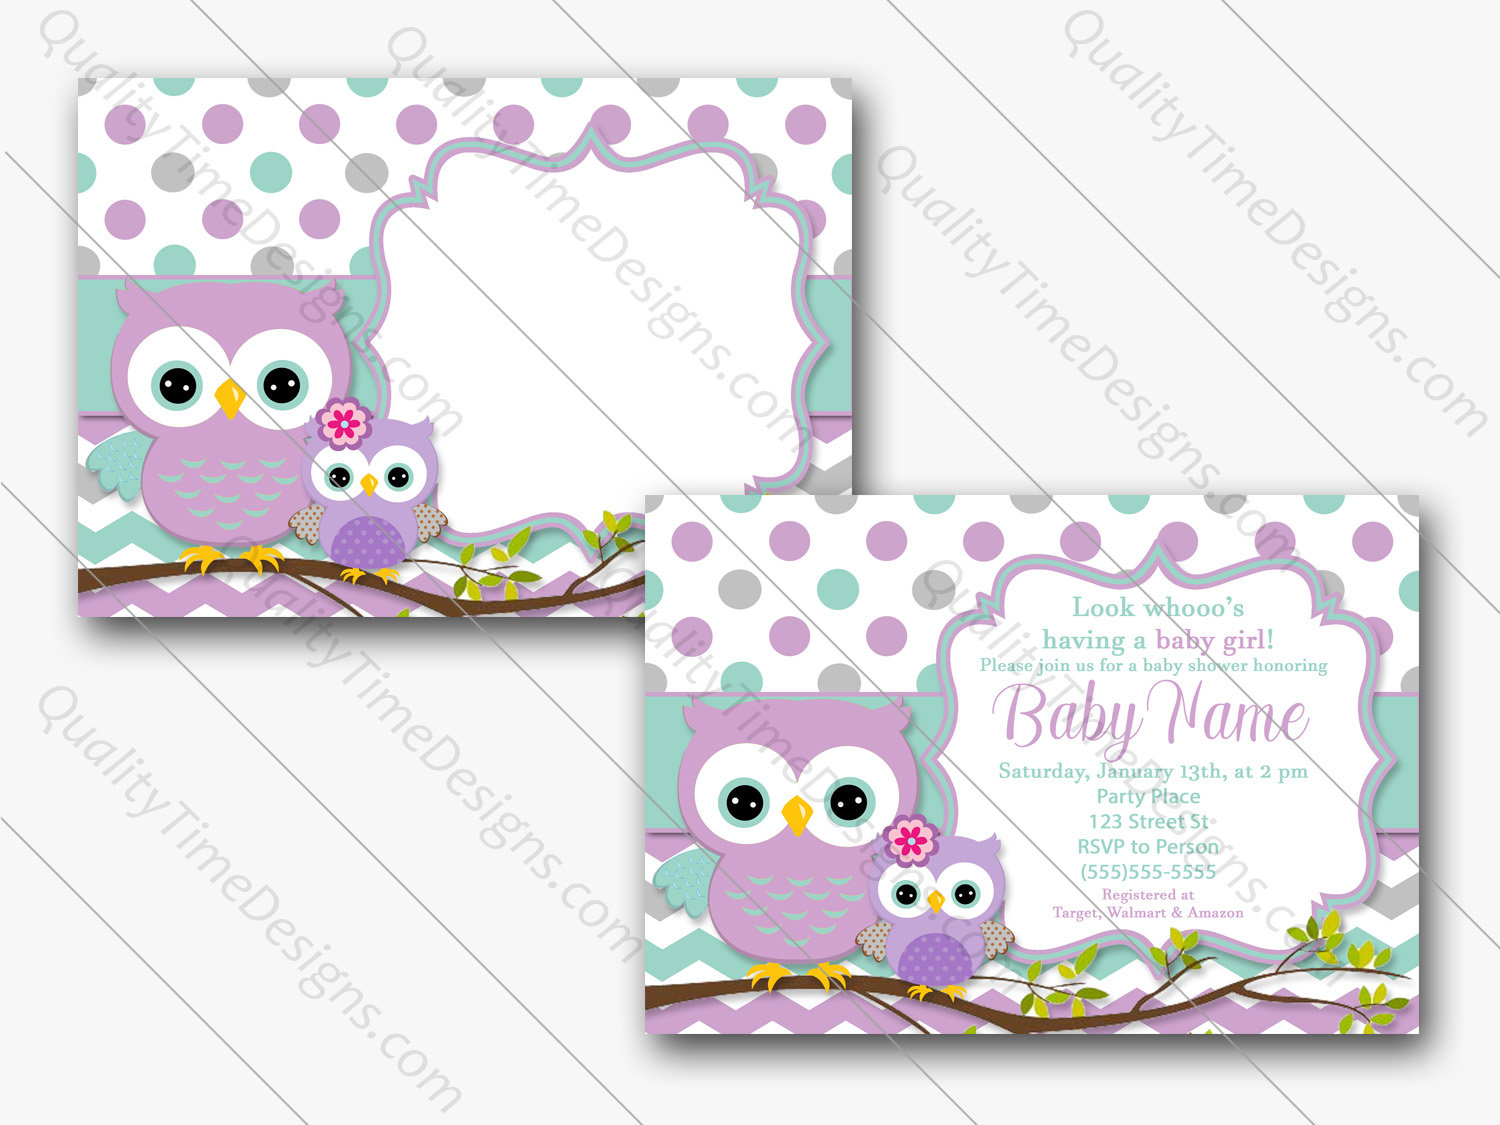 Printable Baby Shower Invitation 7 X 5 Purple Owl Teal